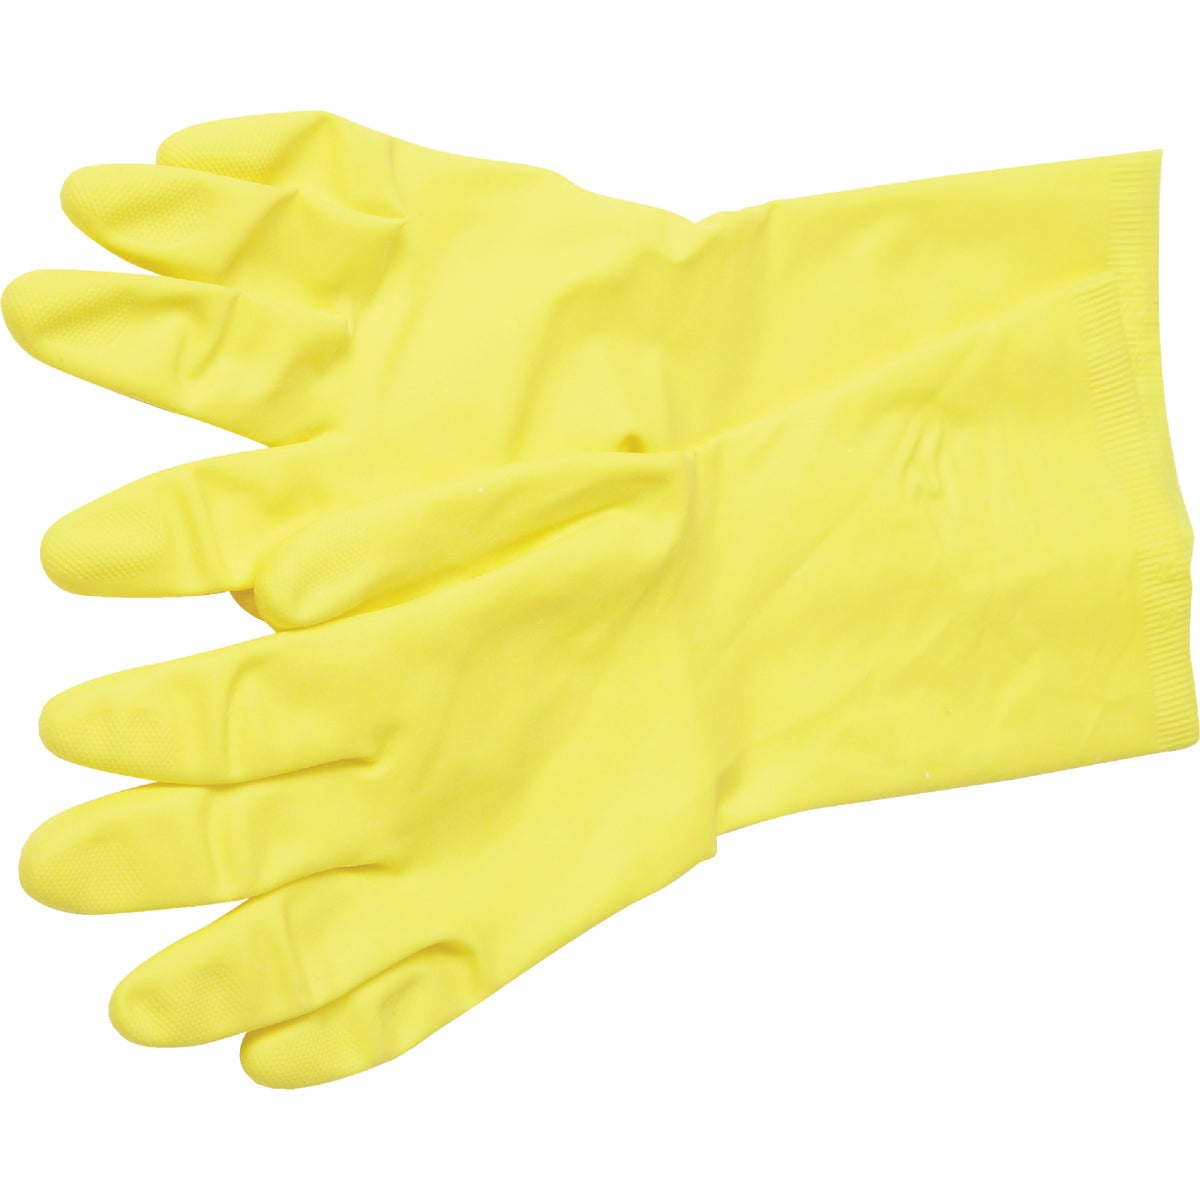 XL LATEX GLOVES - 634353 by Do it Best